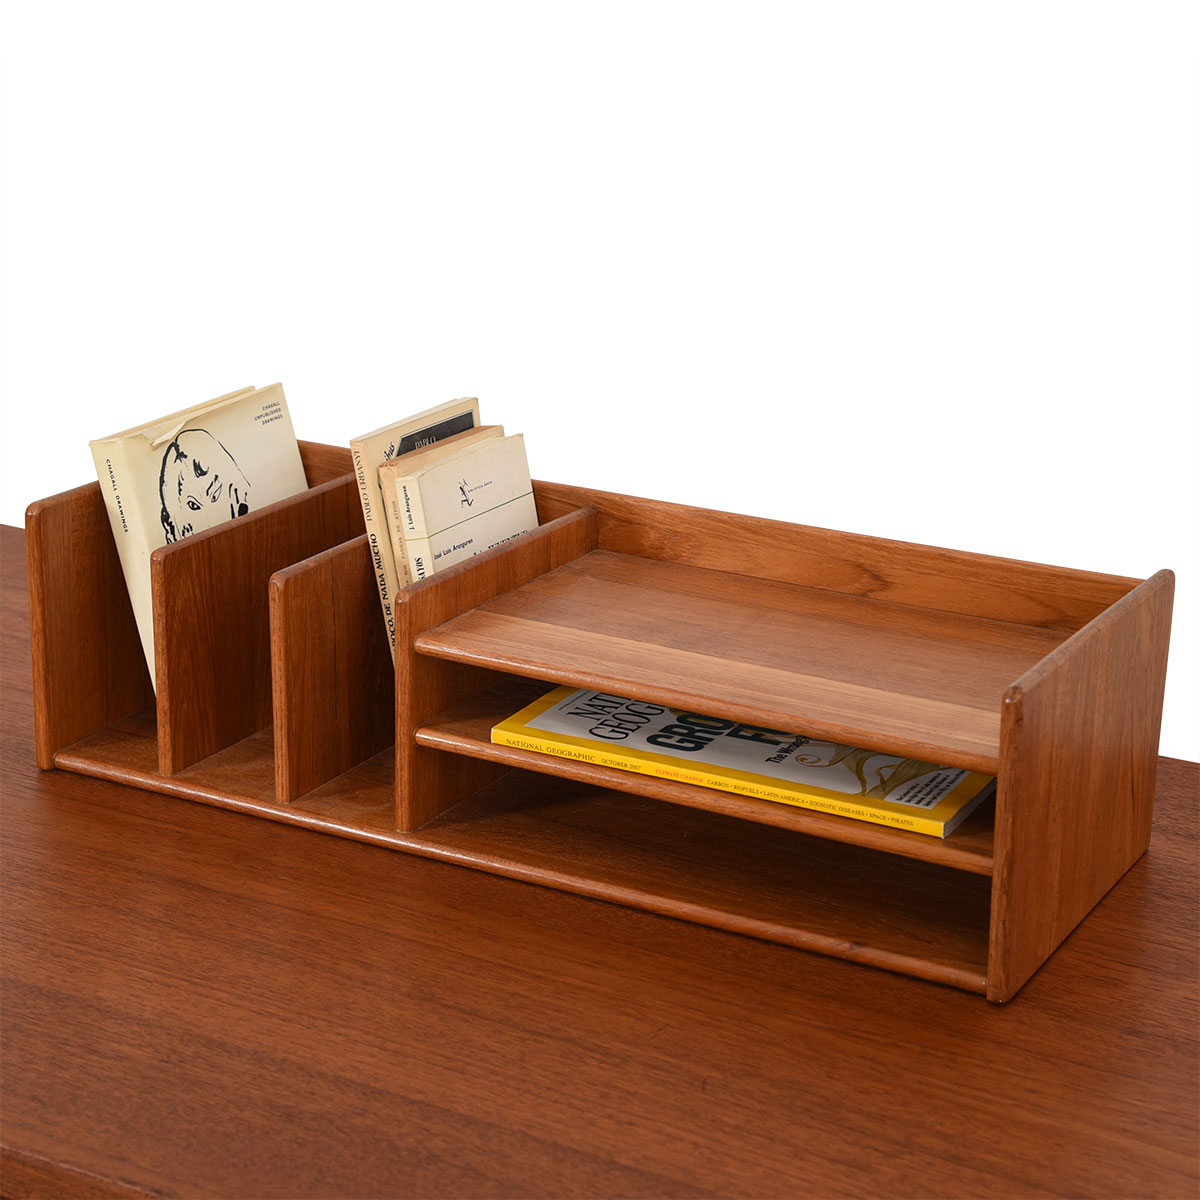 Danish Modern Desk Organizer in Teak by Pedersen & Hansen